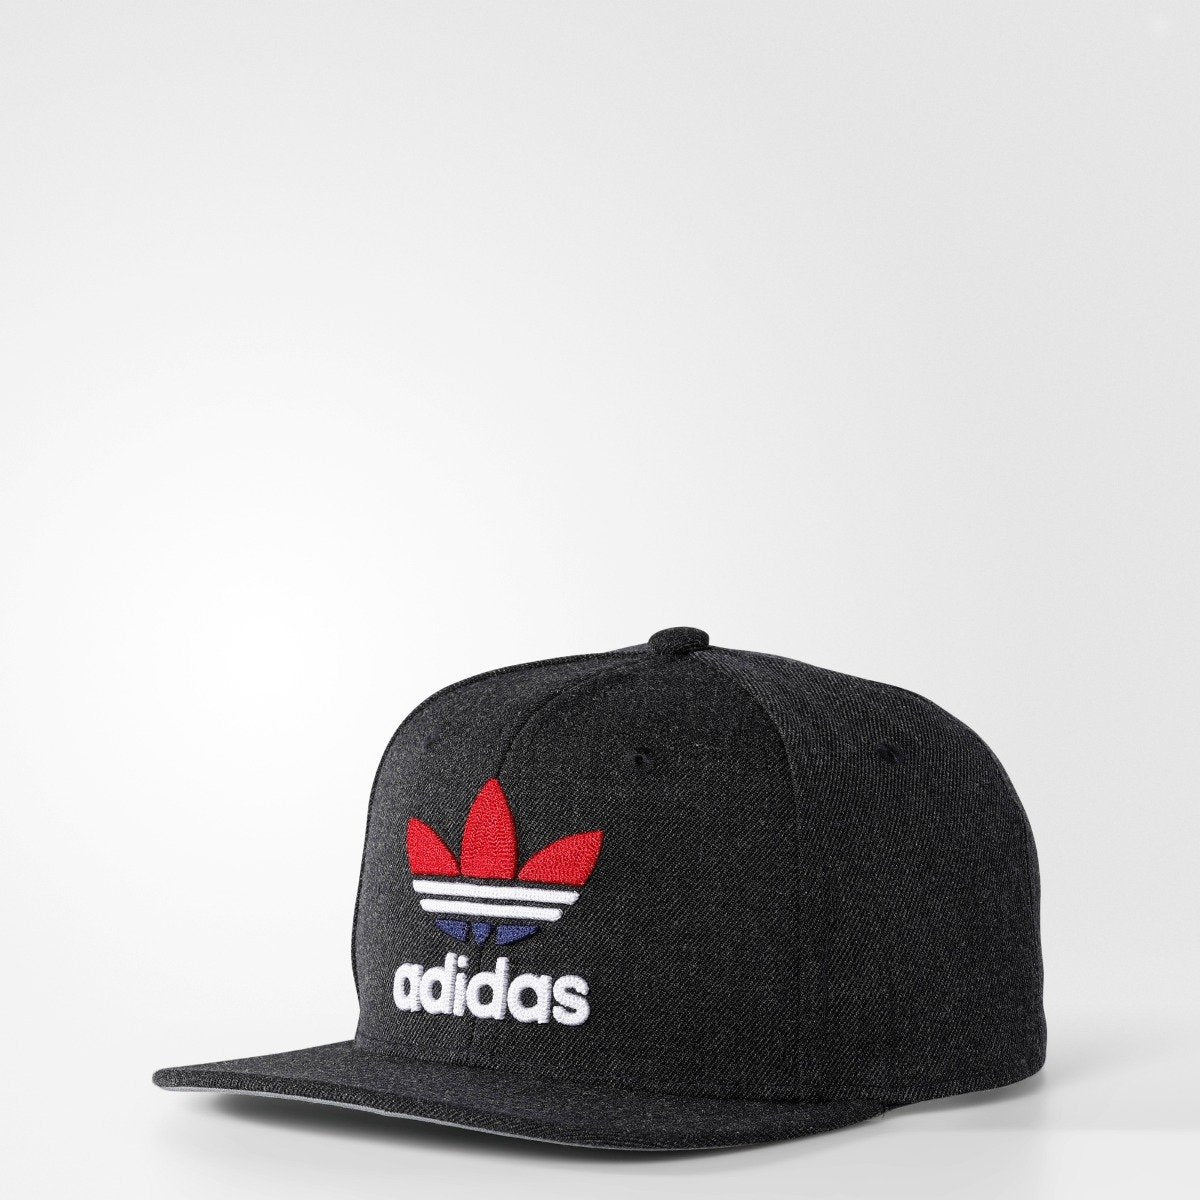 14fc1a280122da Men's Adidas Originals Trefoil Chain Snapback Hat Grey BI4544 ...